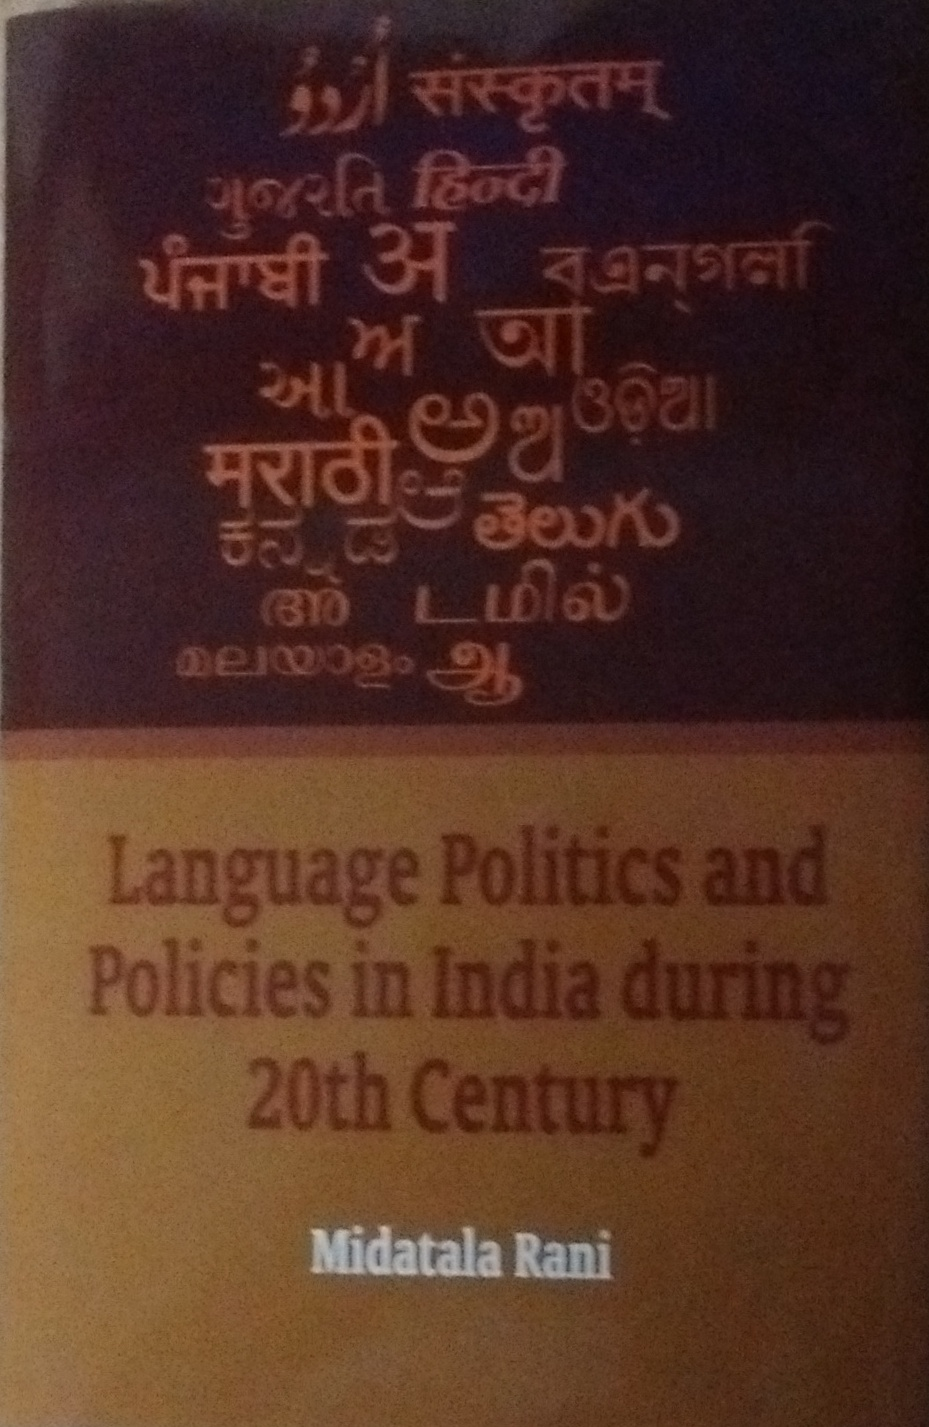 Language Politics and Policies in India During 20t…